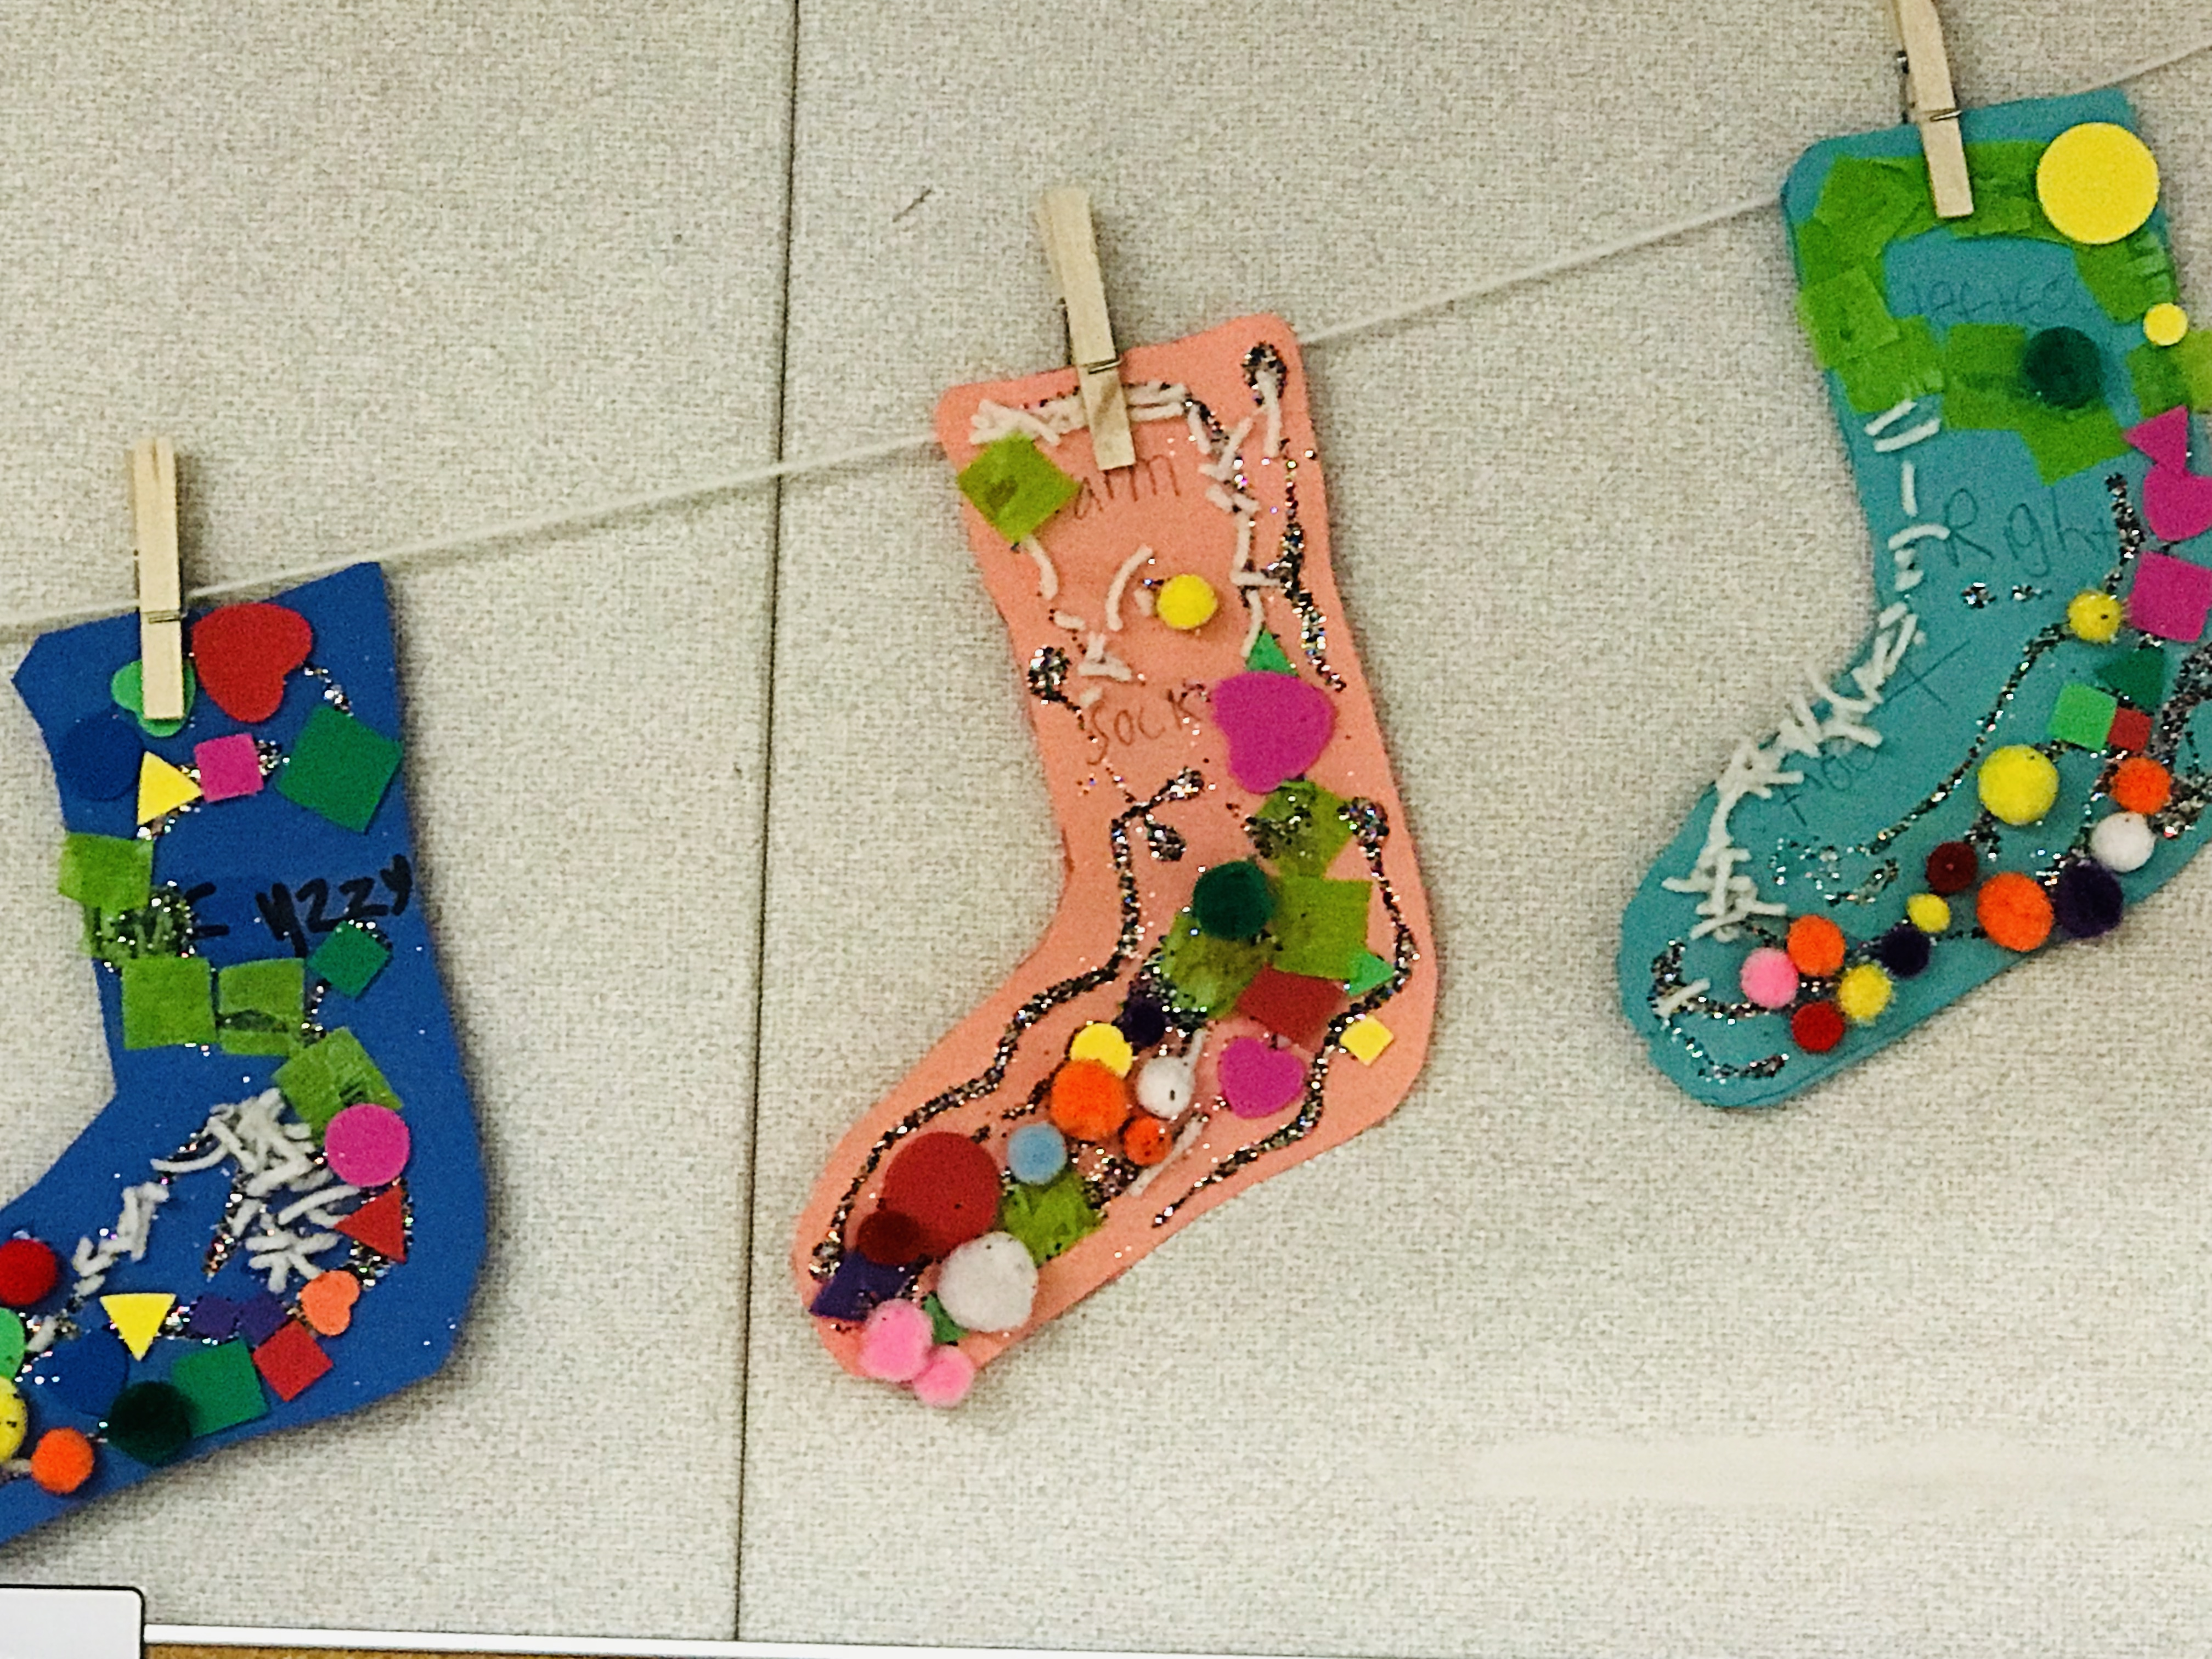 Clothes pinned colorful Dr. Seuss socks